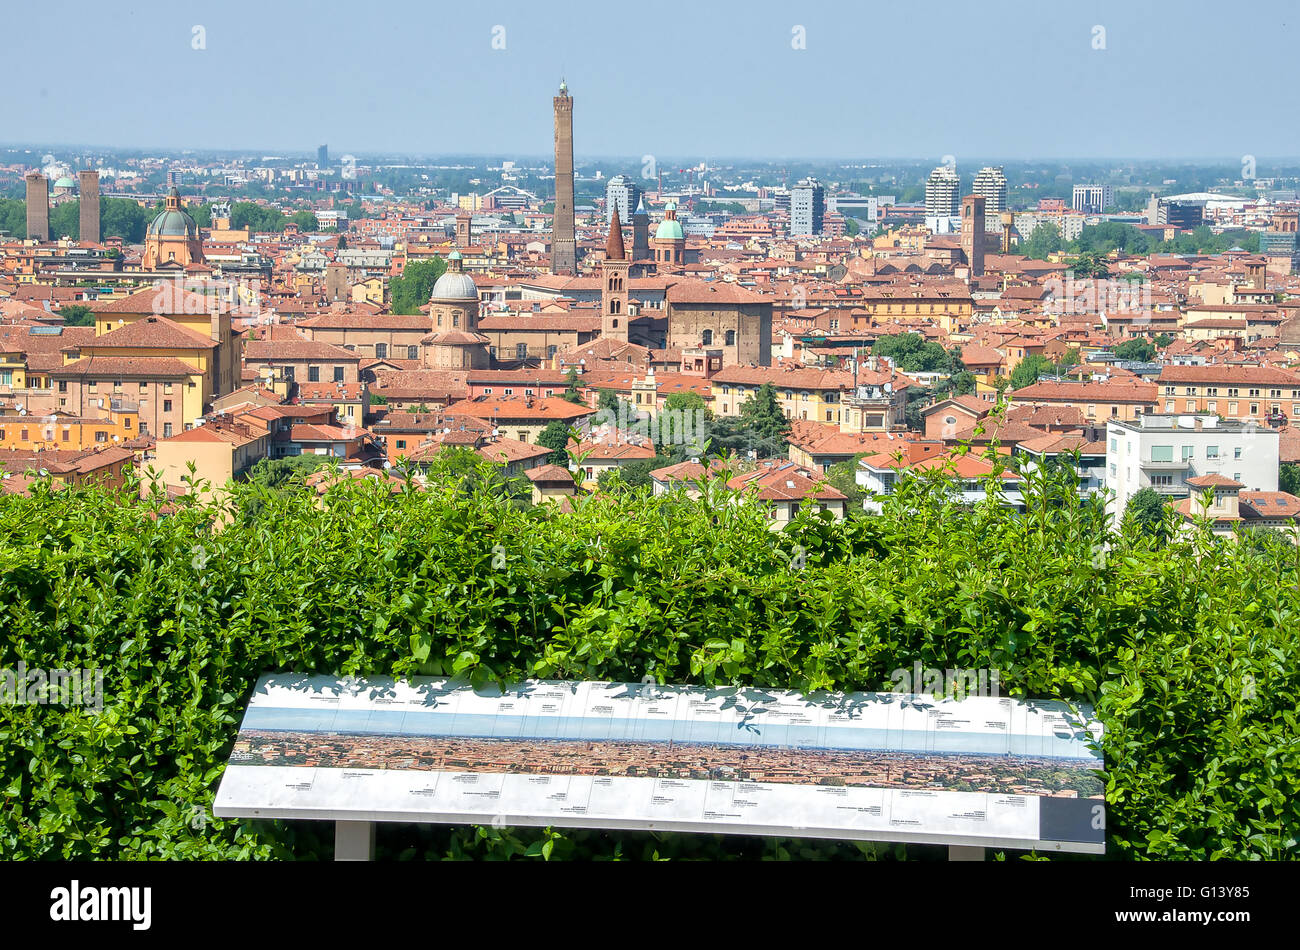 Bologna tour aerial view sightsee emilia romagna - Stock Image